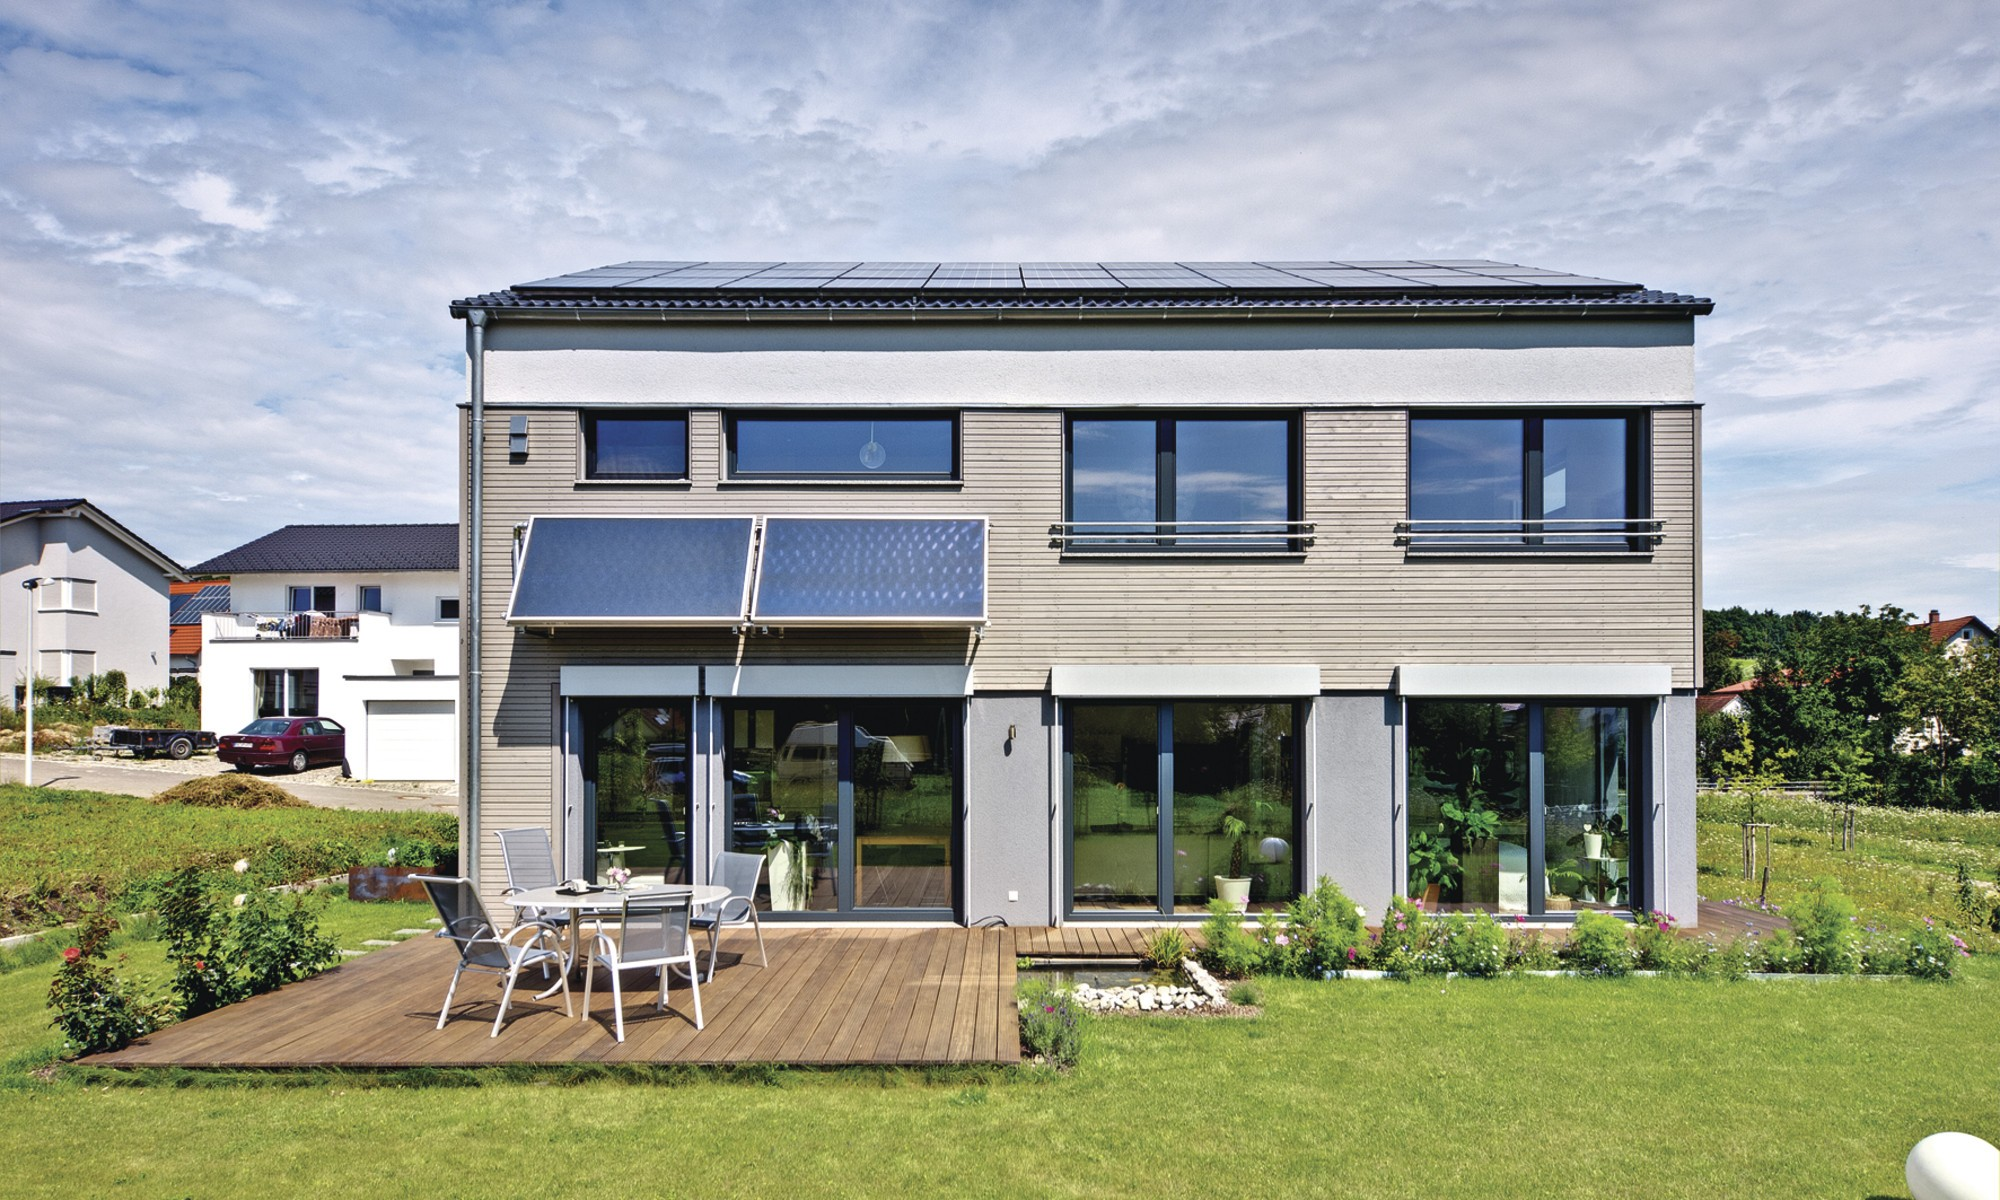 Modern eco-friendly self-build home